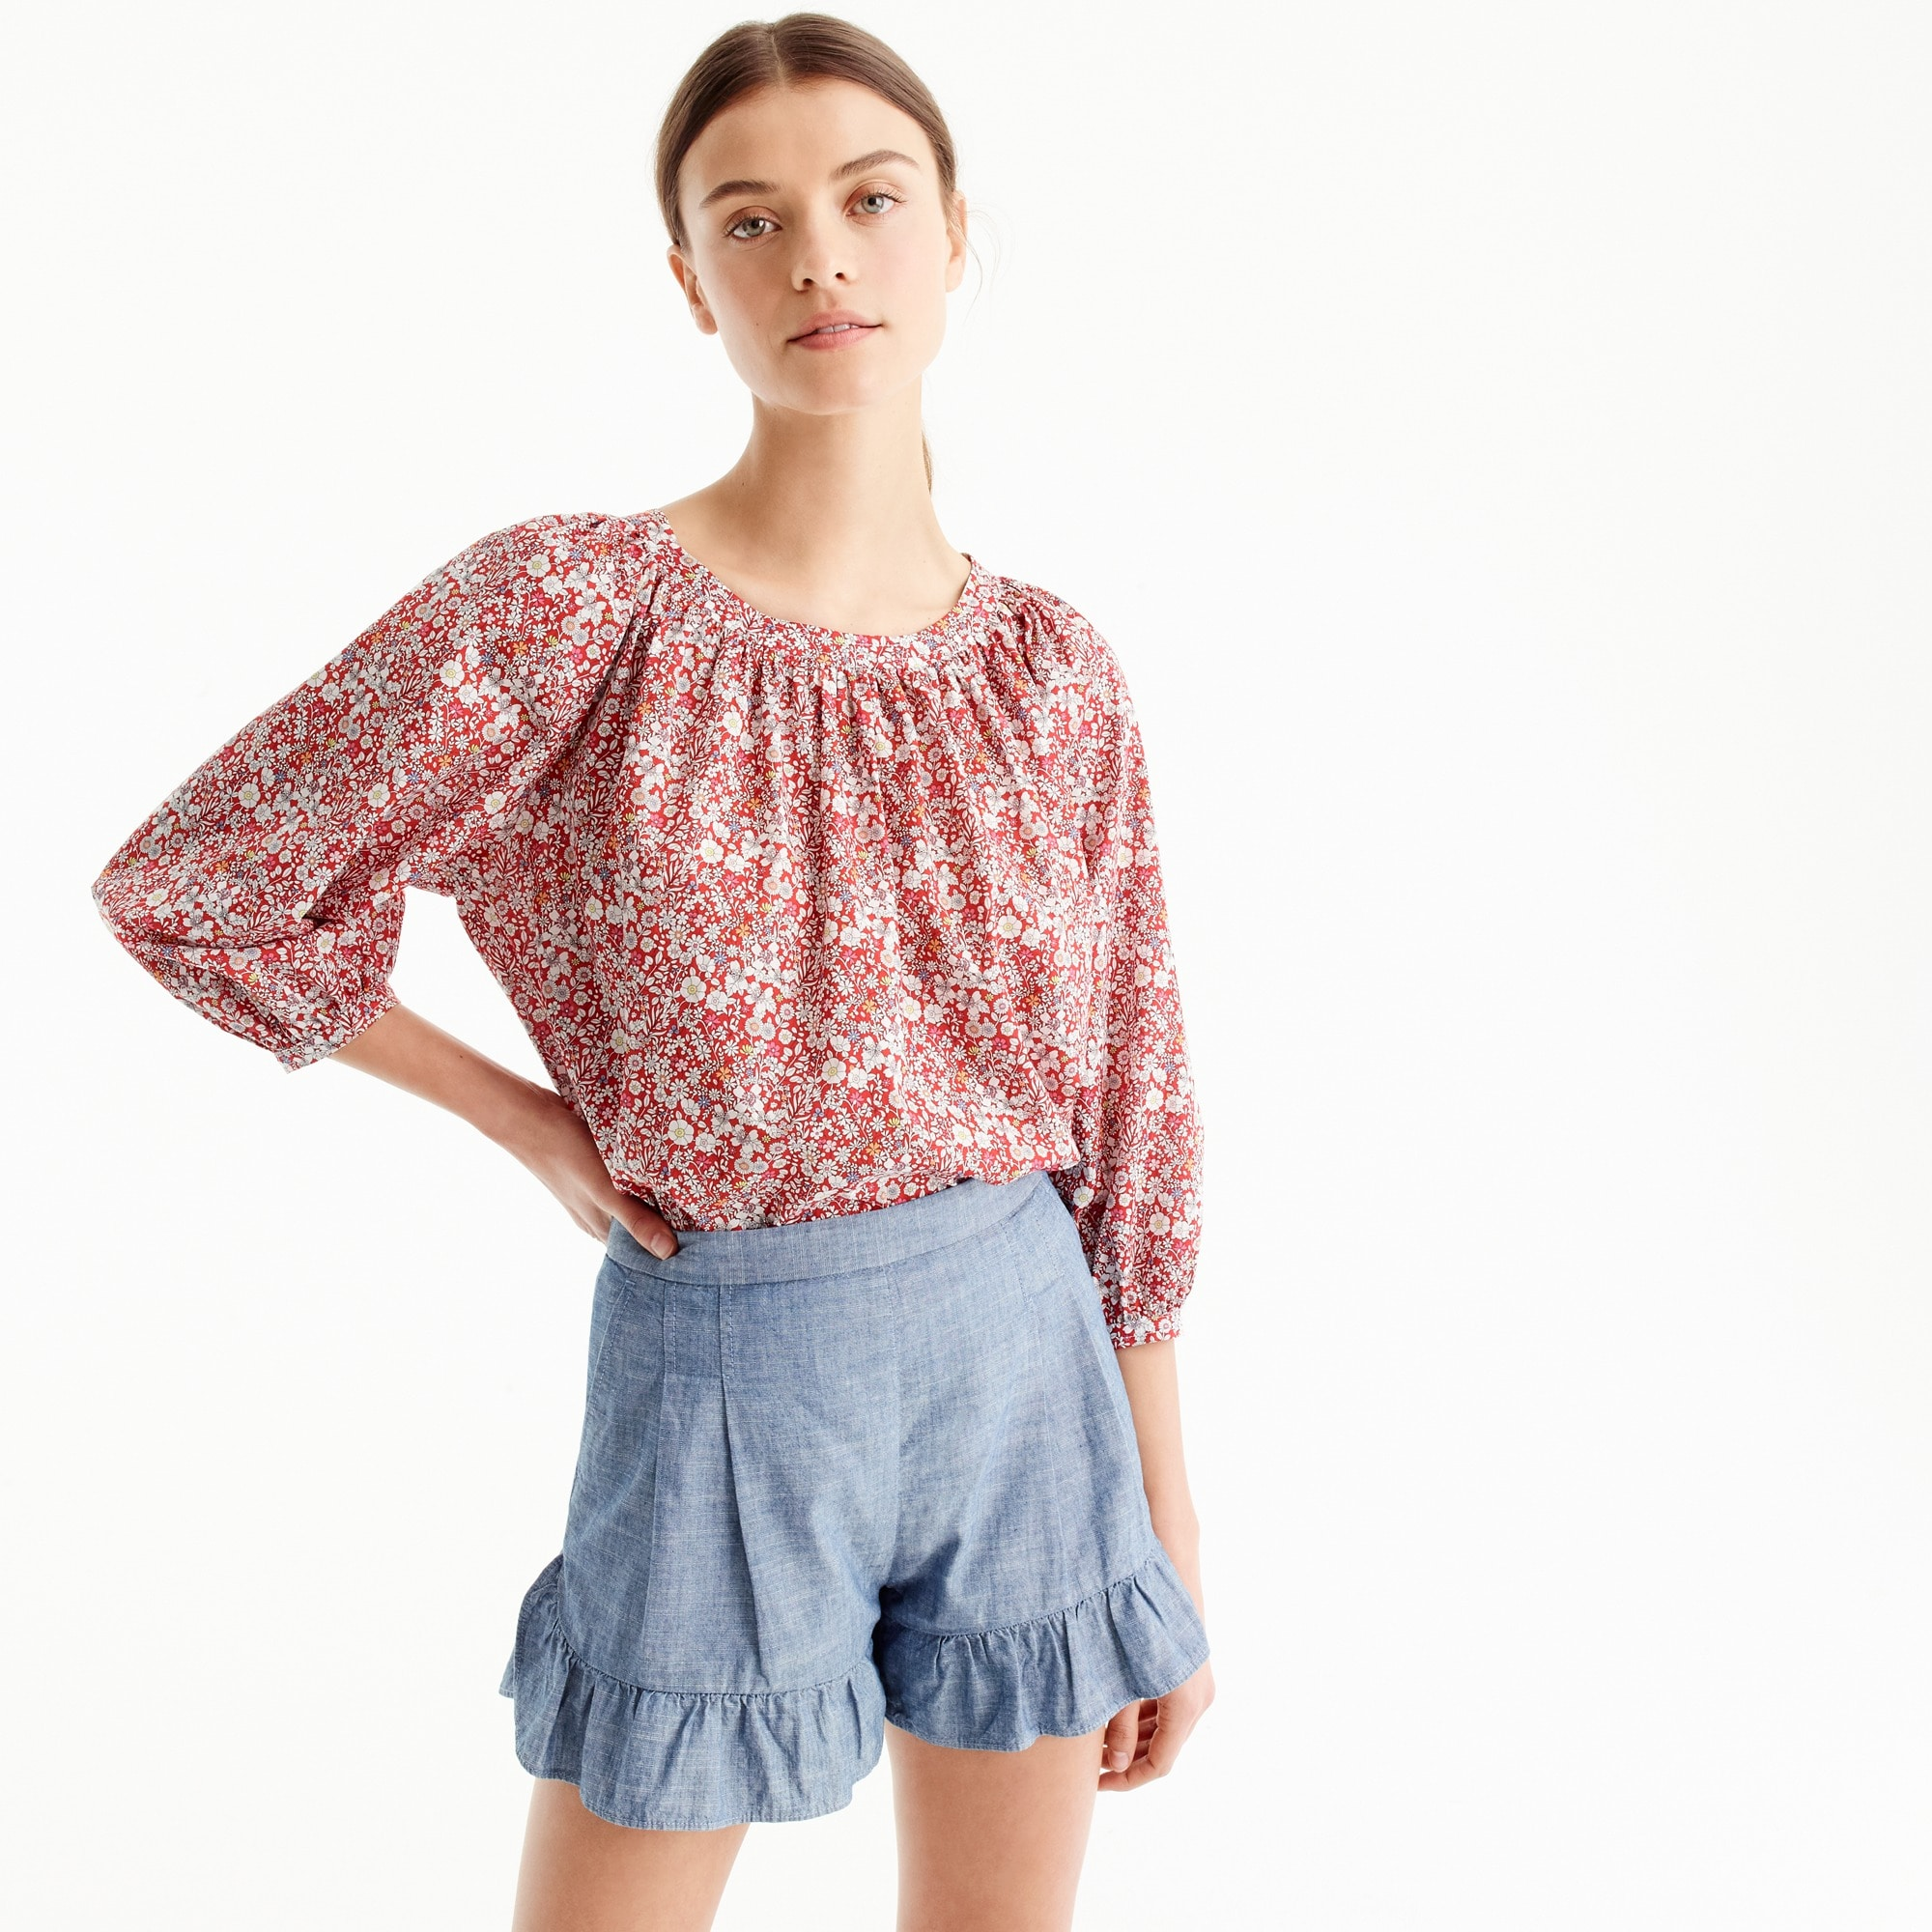 The perfect top in Liberty® June's Meadow floral